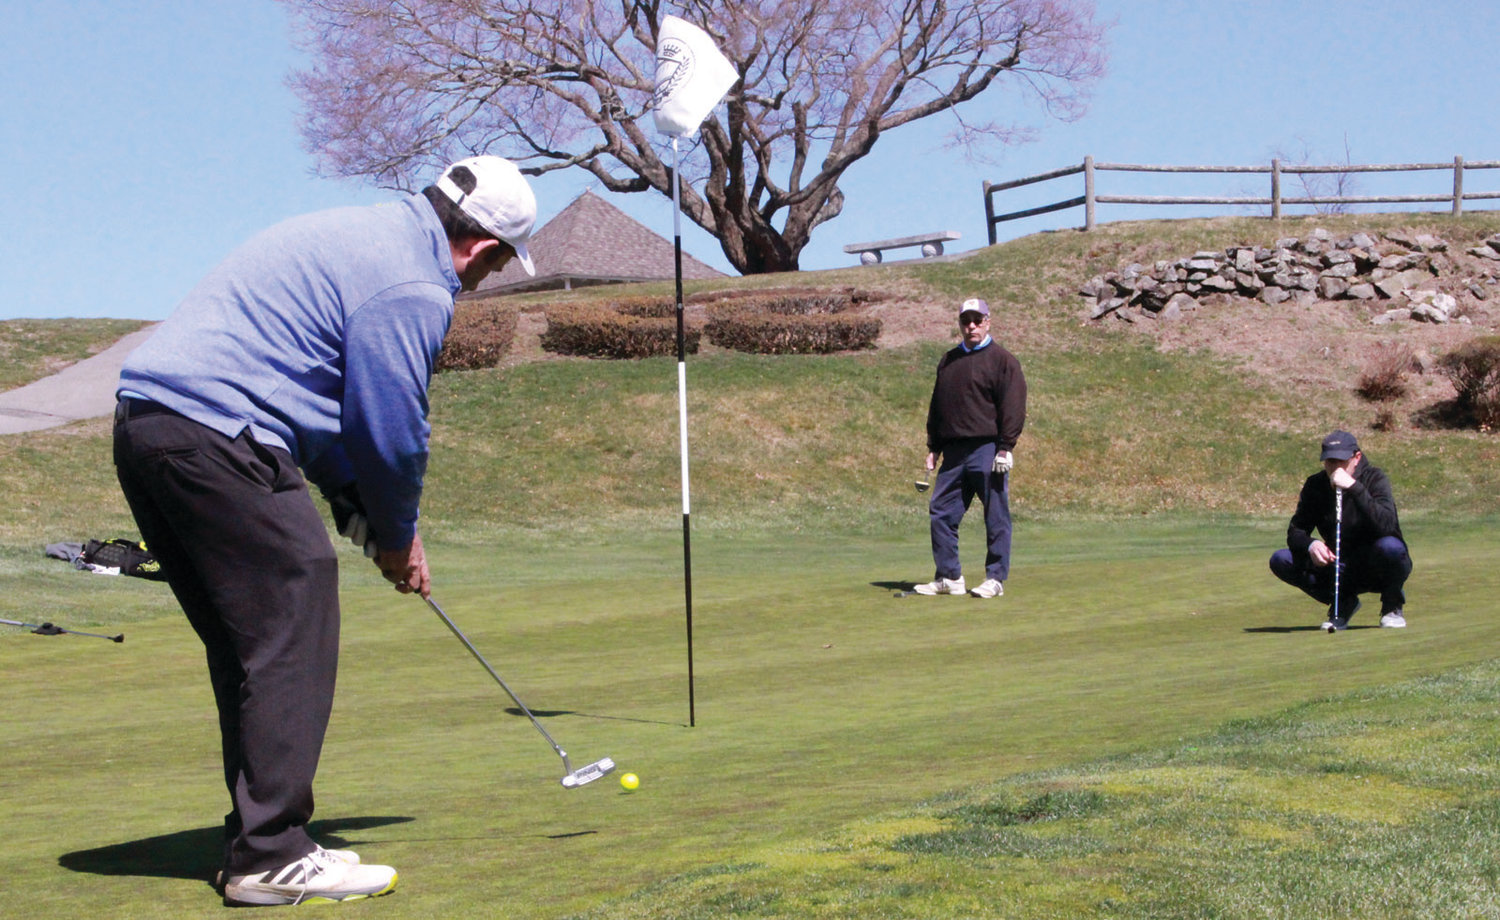 HITTING THE LINKS: Local golfers putt last weekend.